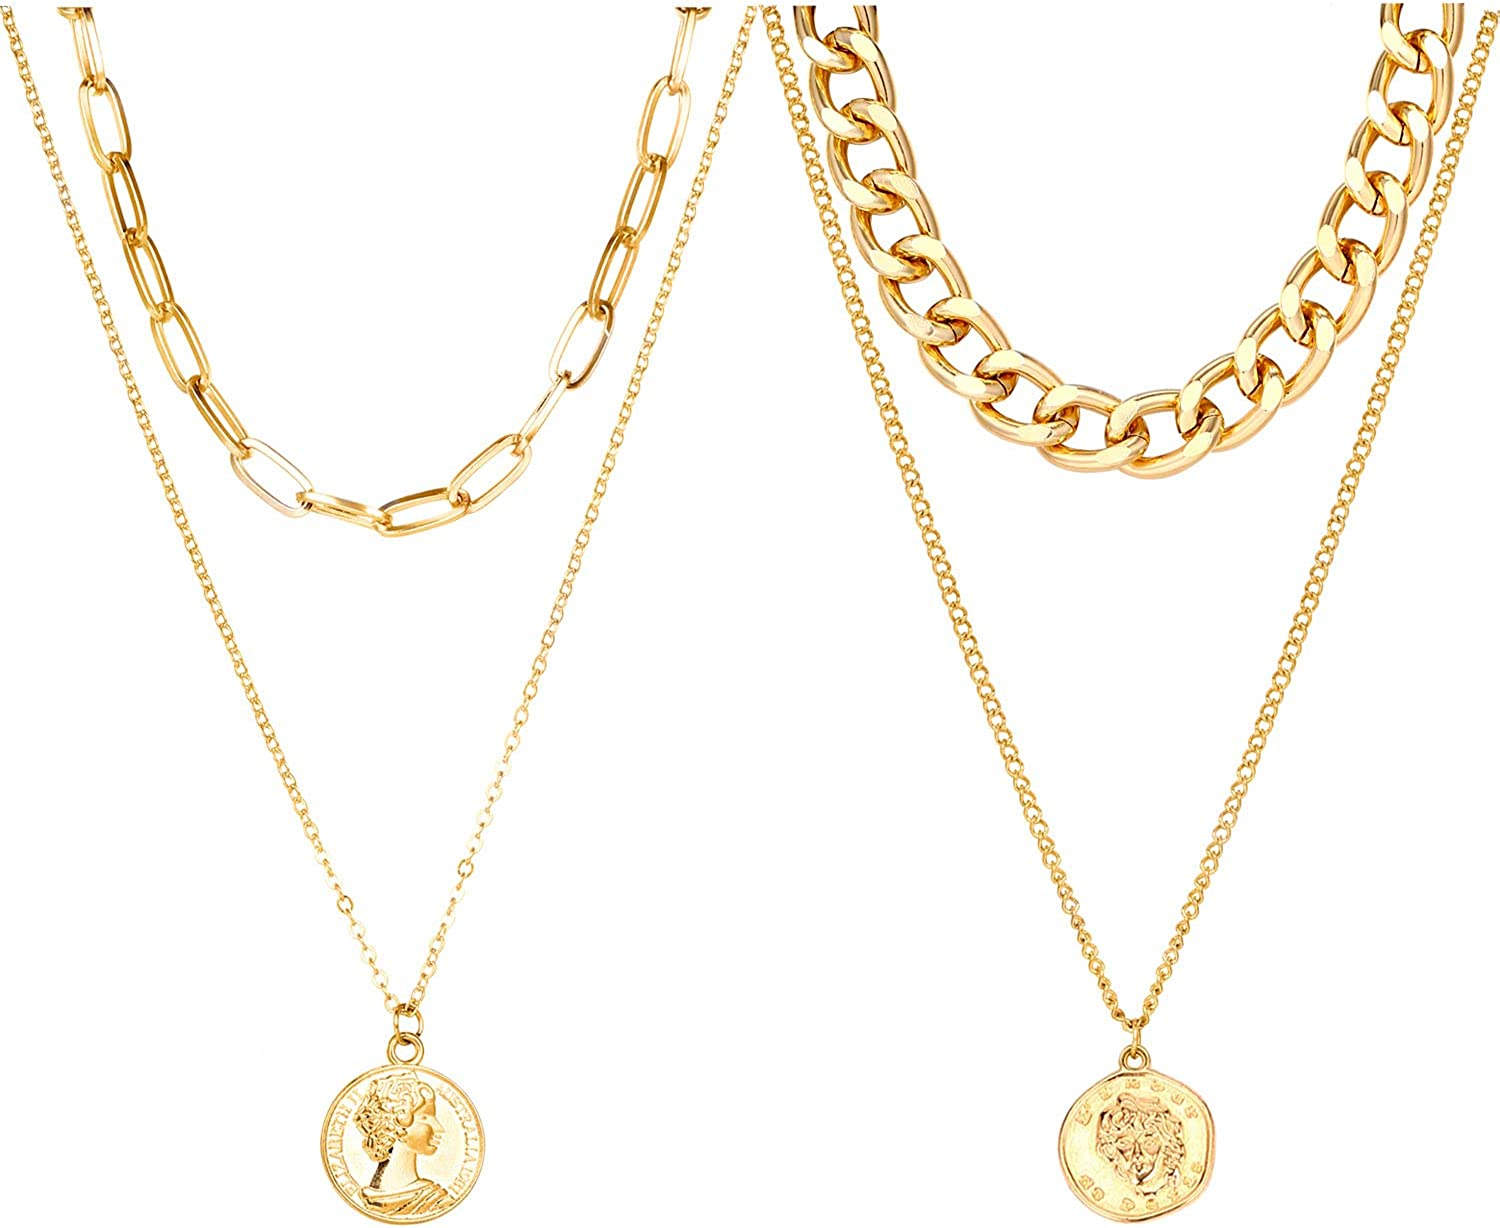 2 PCS Layered Necklace Gold Coin Pendant Link Chain With Paperclip Choker Vintage for Women Men